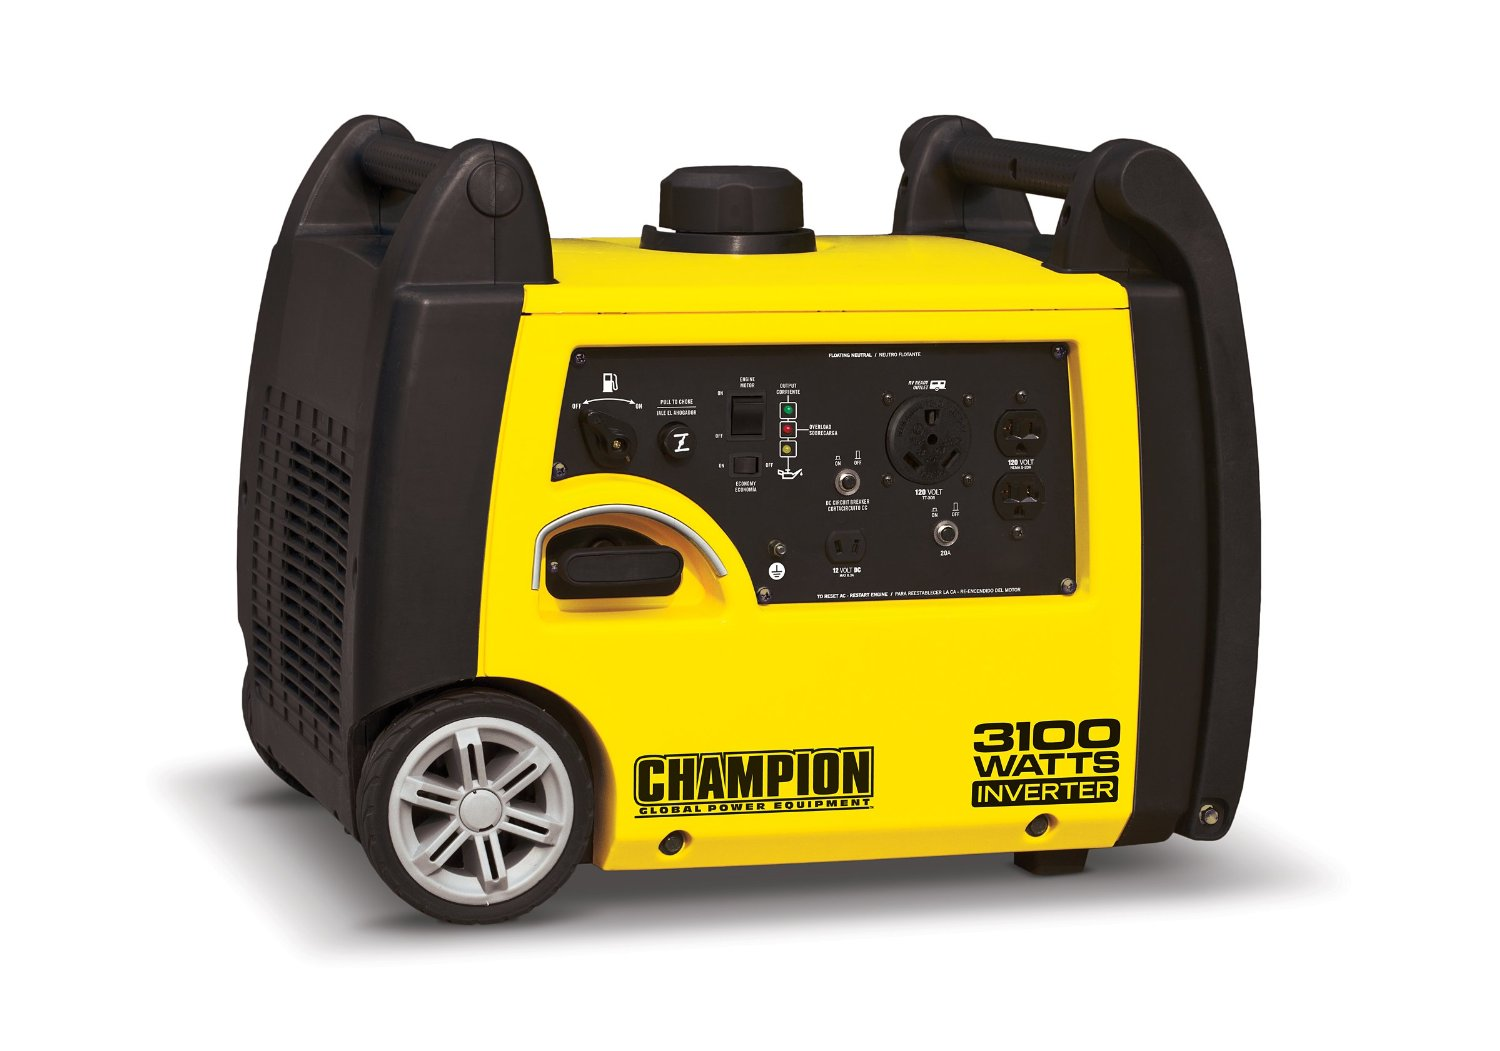 Champion Power Equipment 75531i 3100 Watt RV Ready Portable Inverter Generator